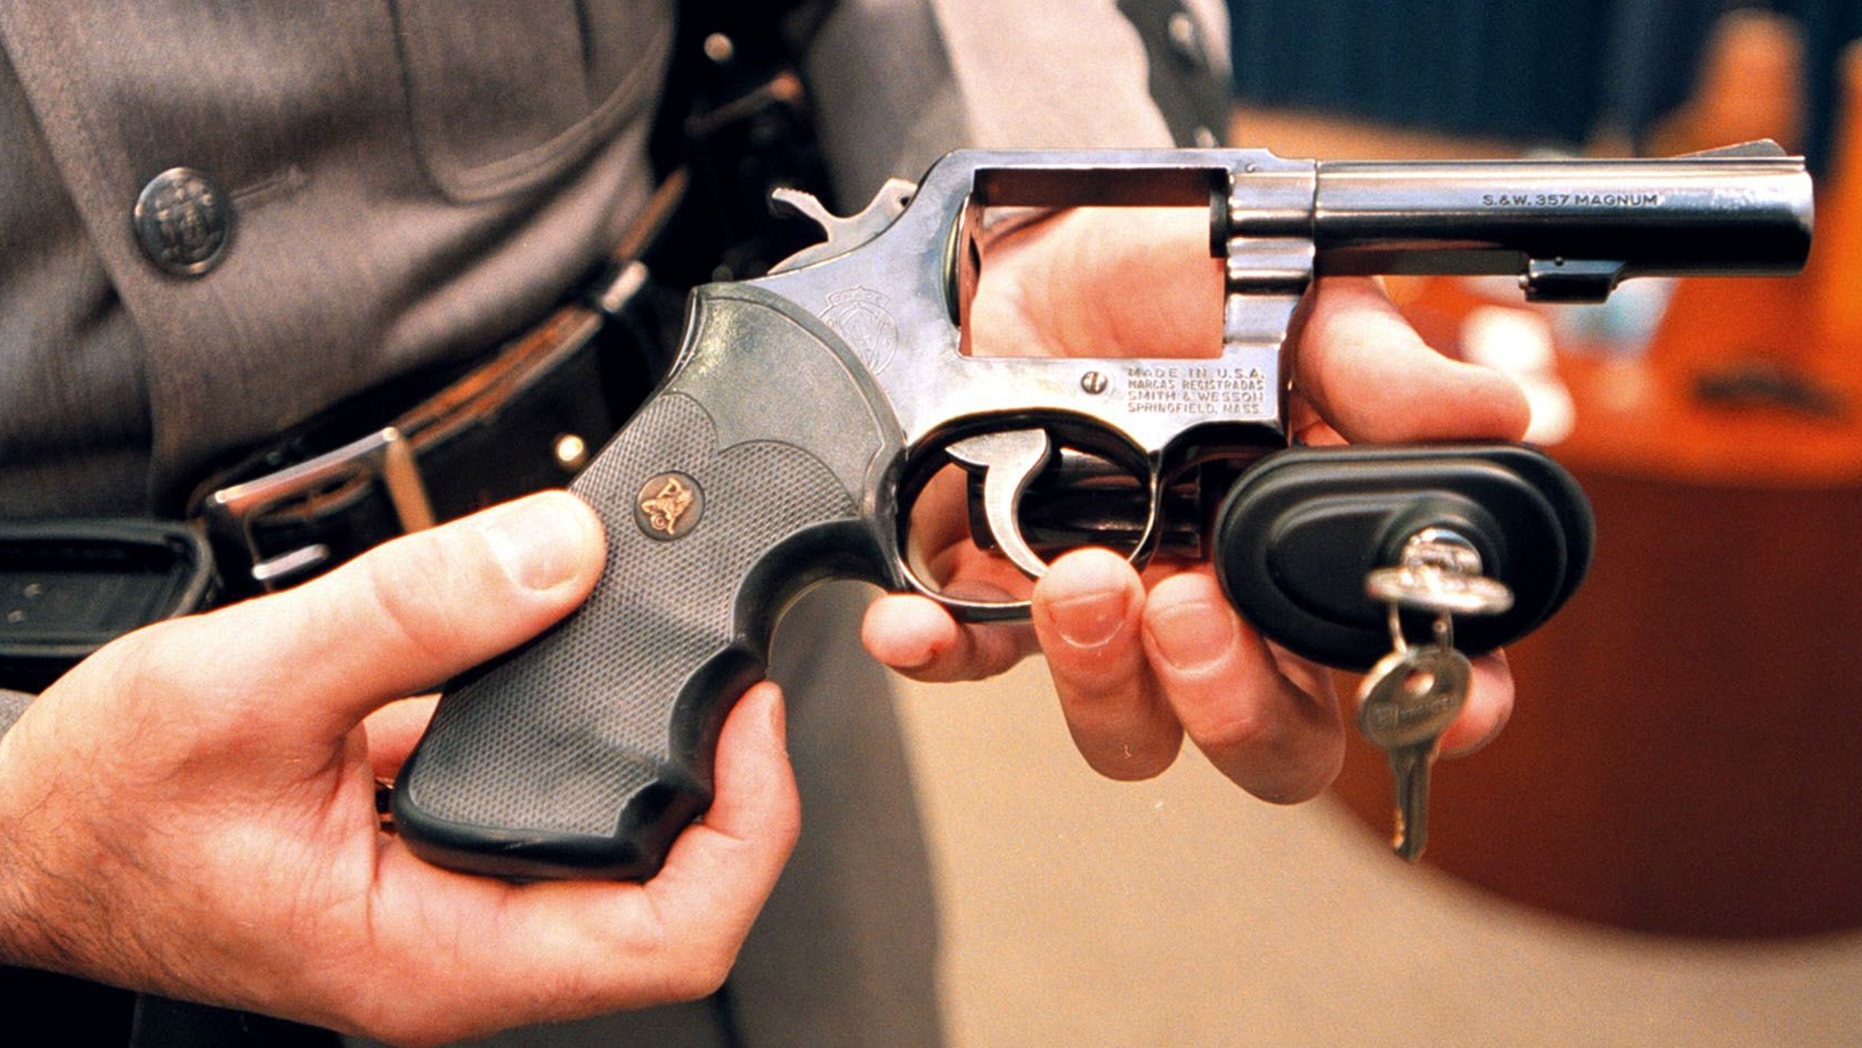 A New York State police officer displays a handgun with a child safety lock on March 15, 2000.